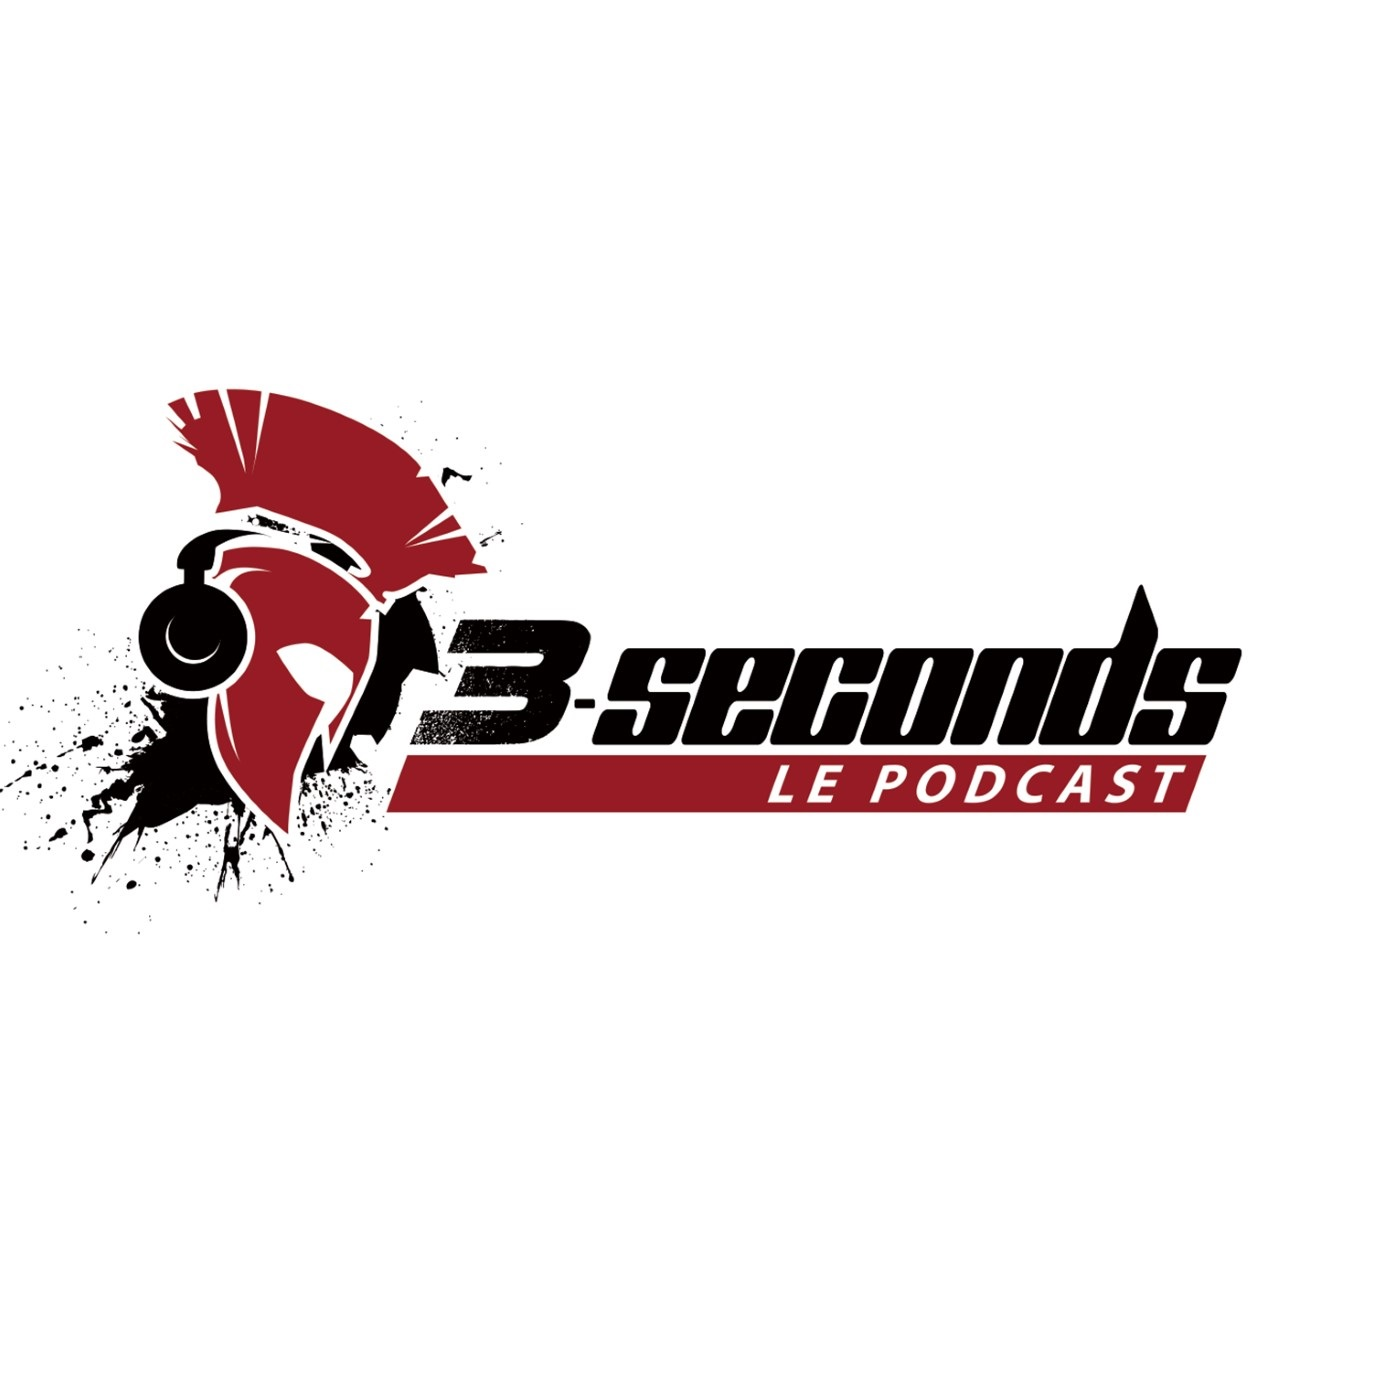 Podcast 3-Seconds